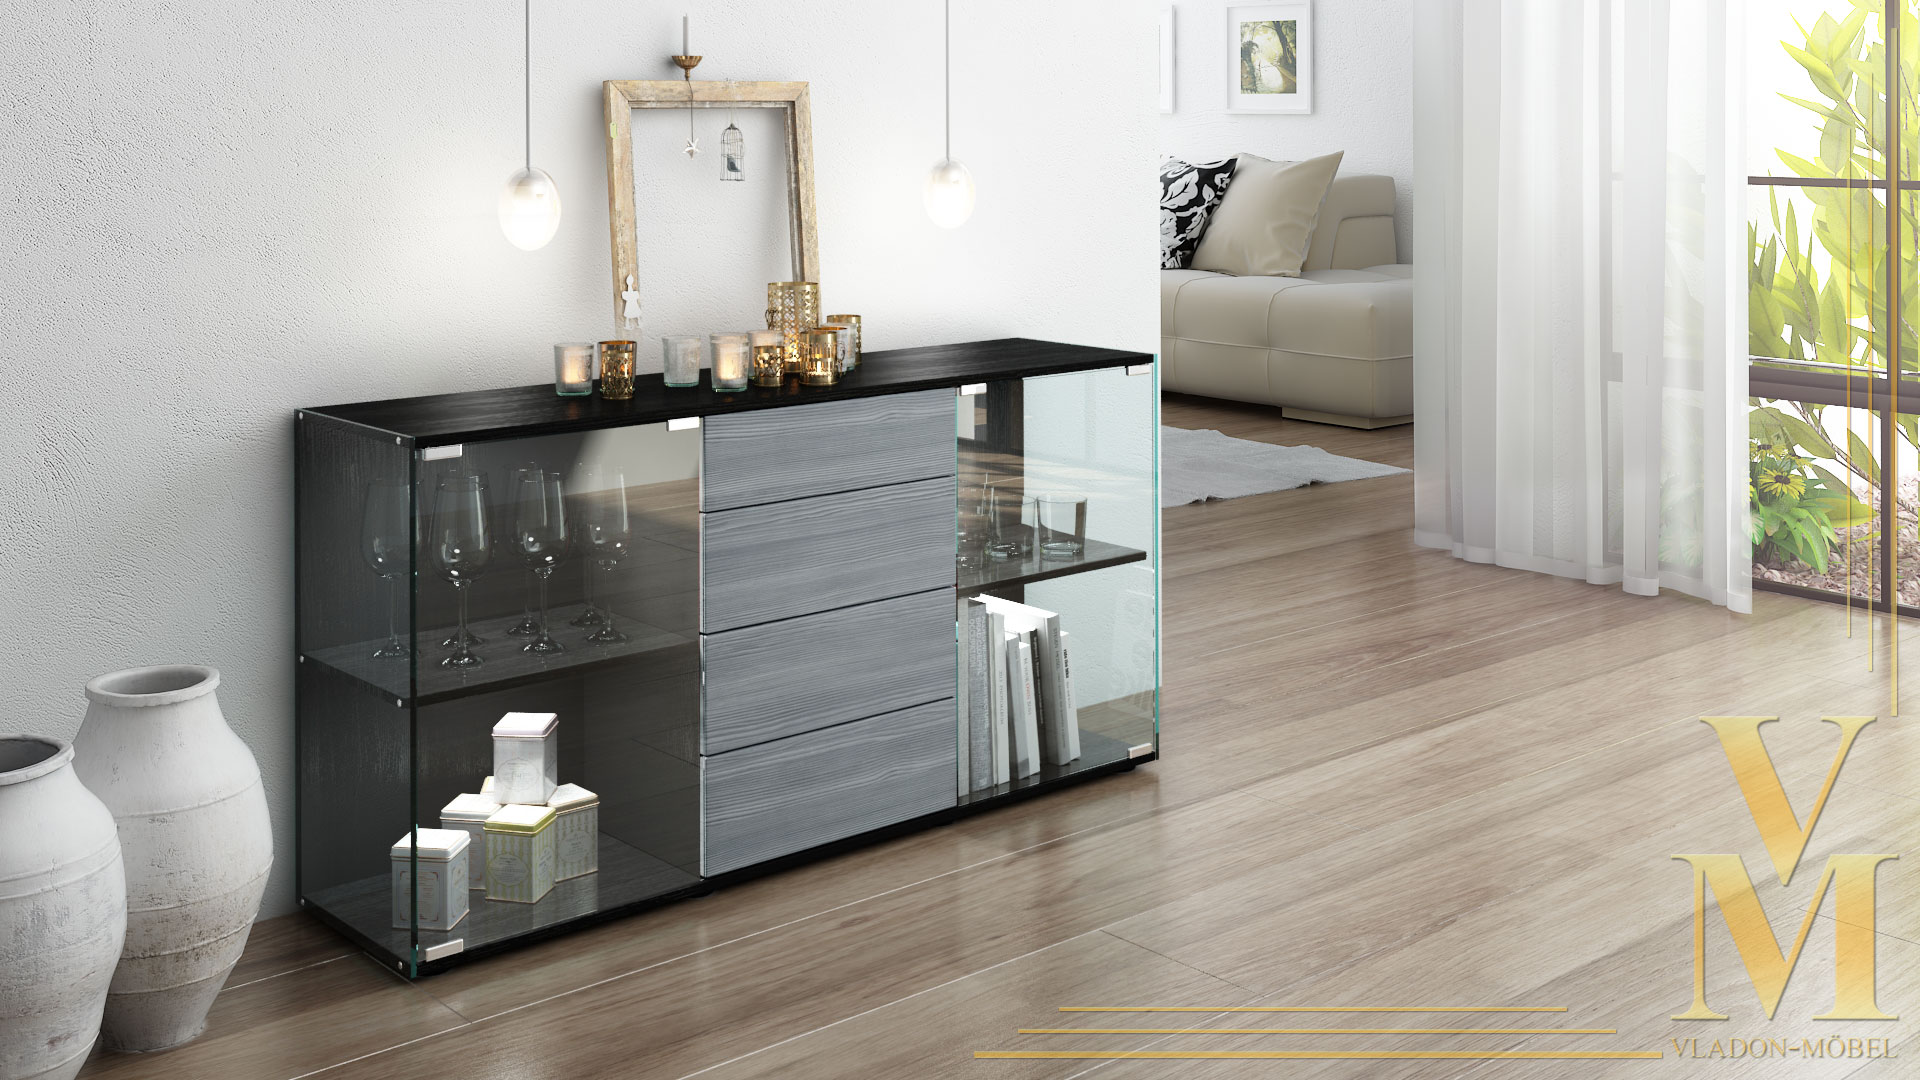 sideboard kommode tv board vitrine anrichte f hr schwarz hochglanz naturt ne ebay. Black Bedroom Furniture Sets. Home Design Ideas